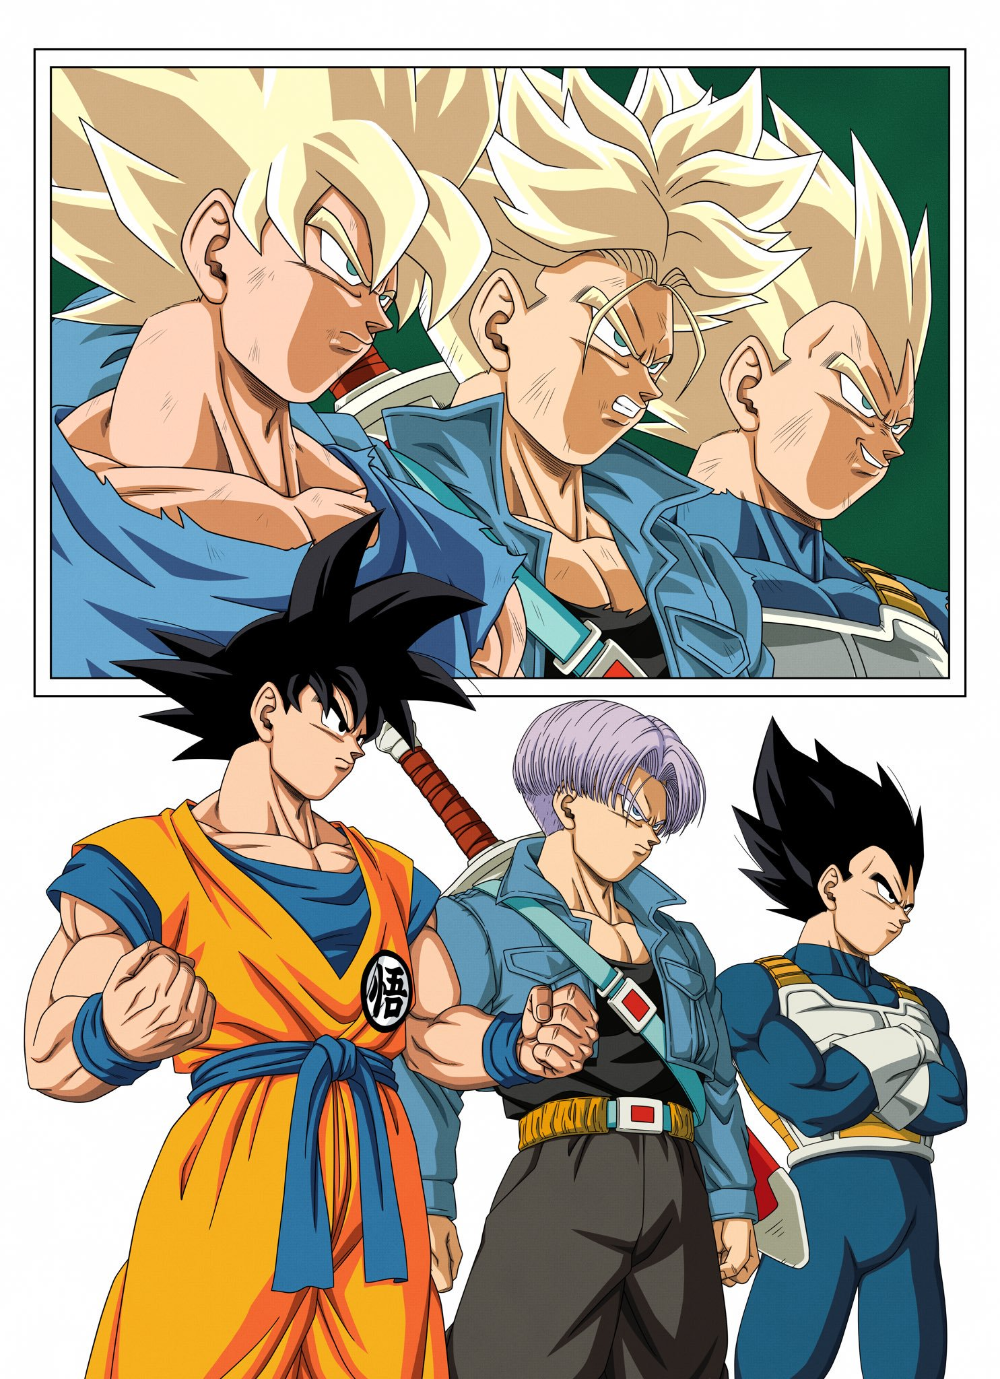 Dragon Ball Z Personnages : dragon, personnages, Michael, Saunders, Personnages, Dragon, Super, Manga,, Anime, Super,, Artwork